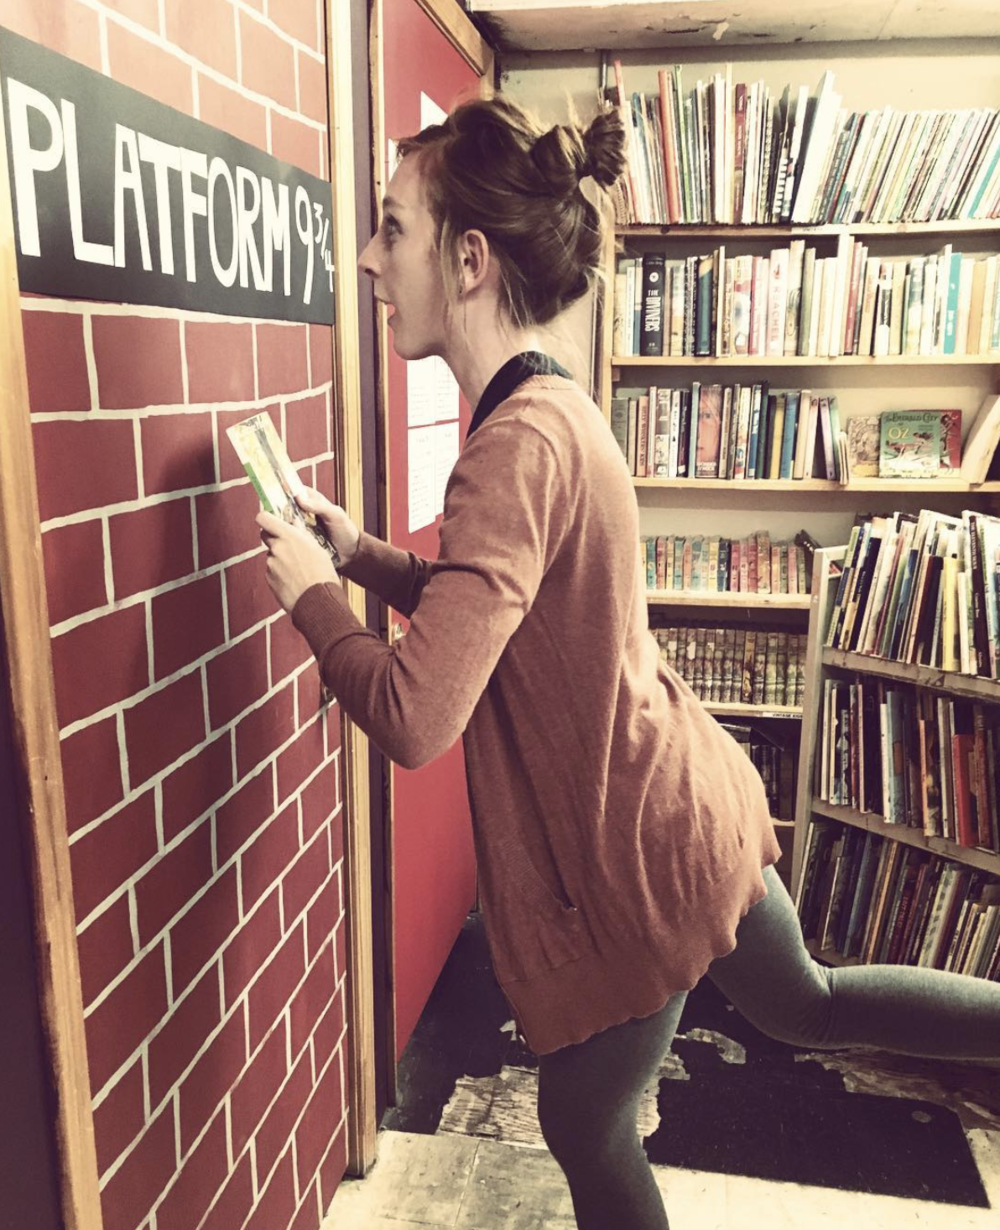 @candus813 going through Platform 9 3/4's at Recycled Books.